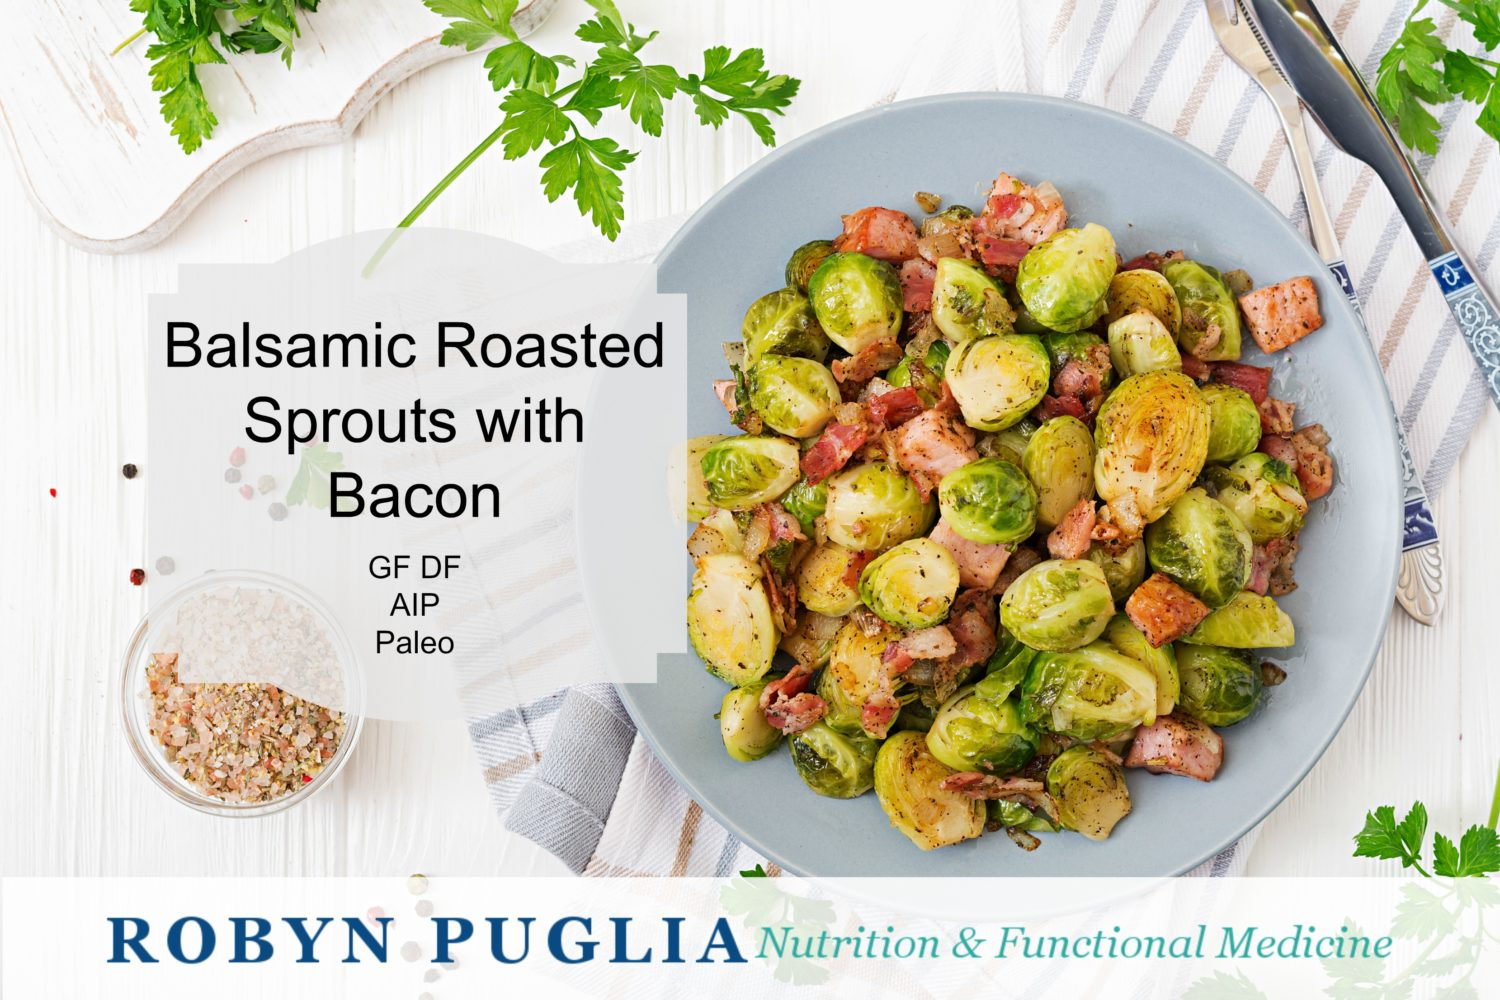 Balsamic Roasted Brussel Sprouts with Bacon